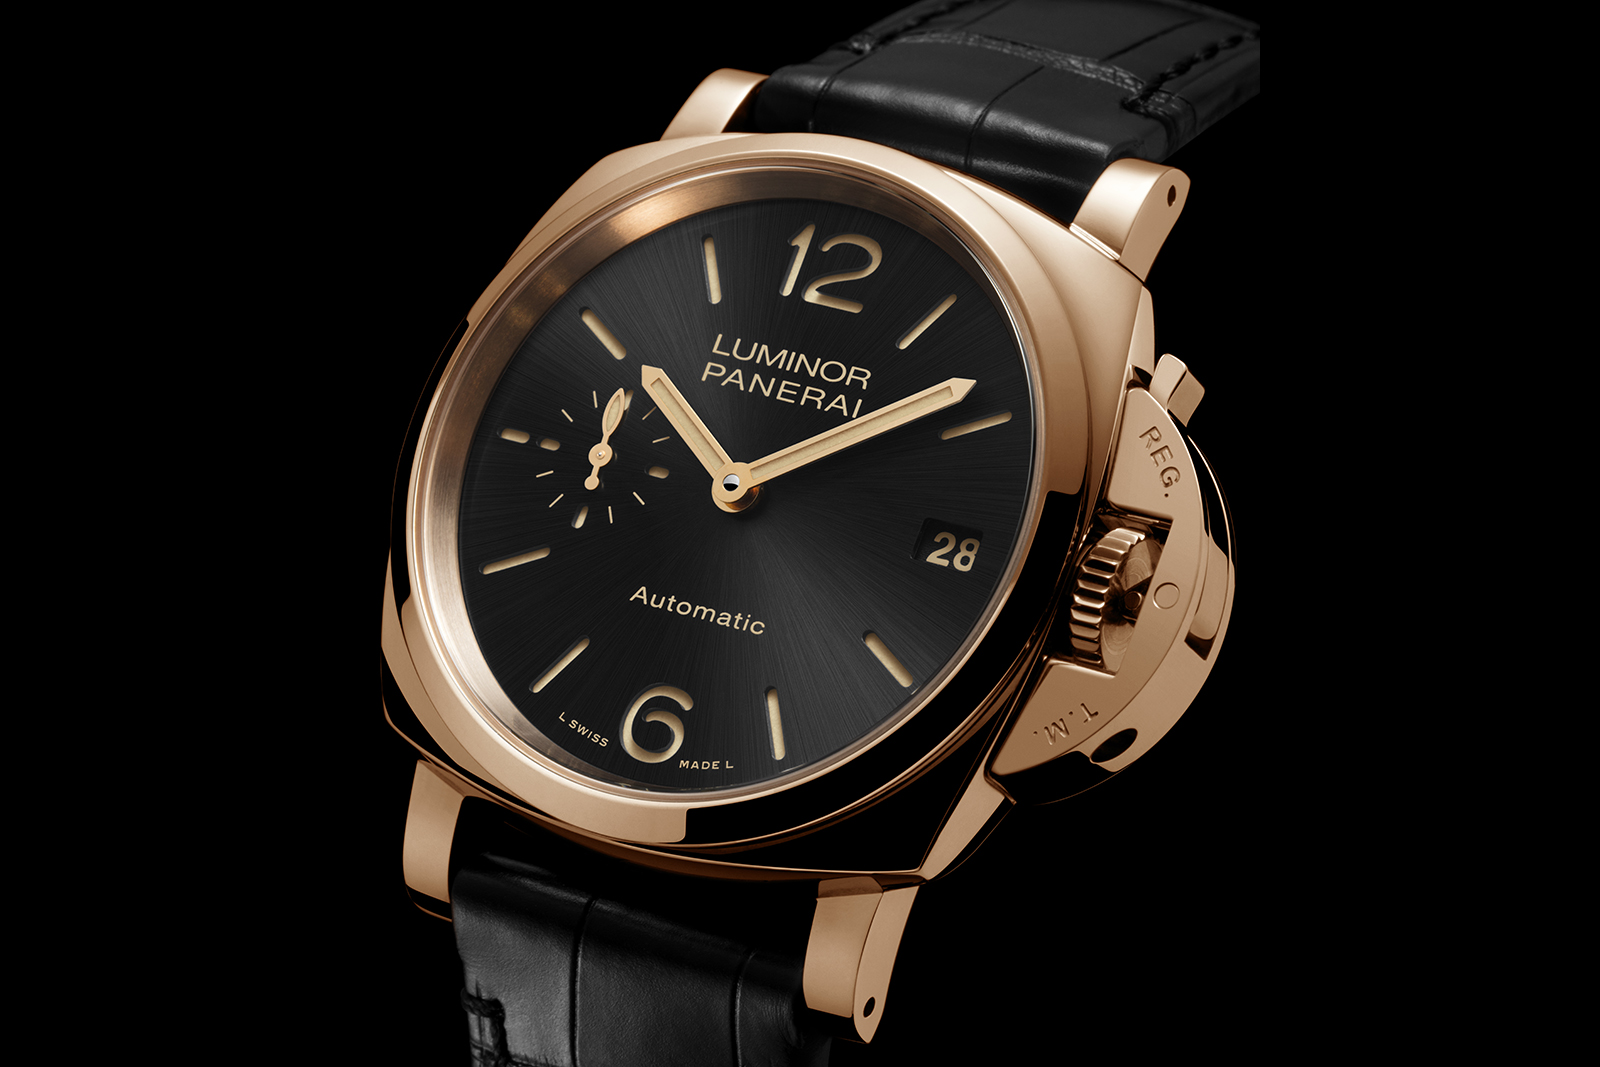 Panerai Luminor Due 3 Days Automatic 38 mm - PAM908